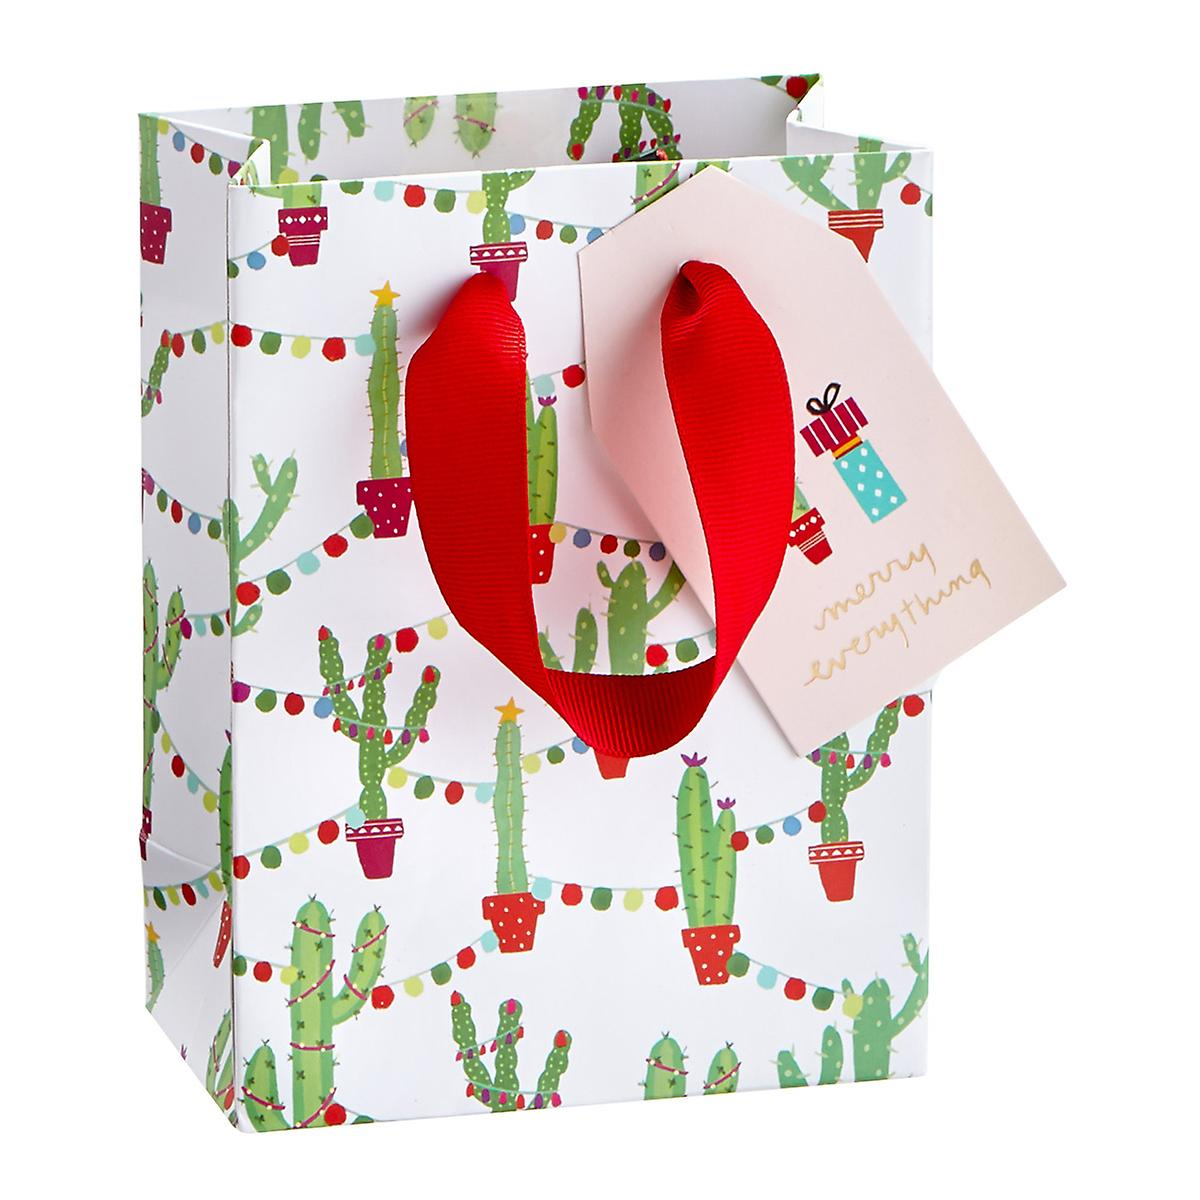 Cactus with Lights Small Gift Bag